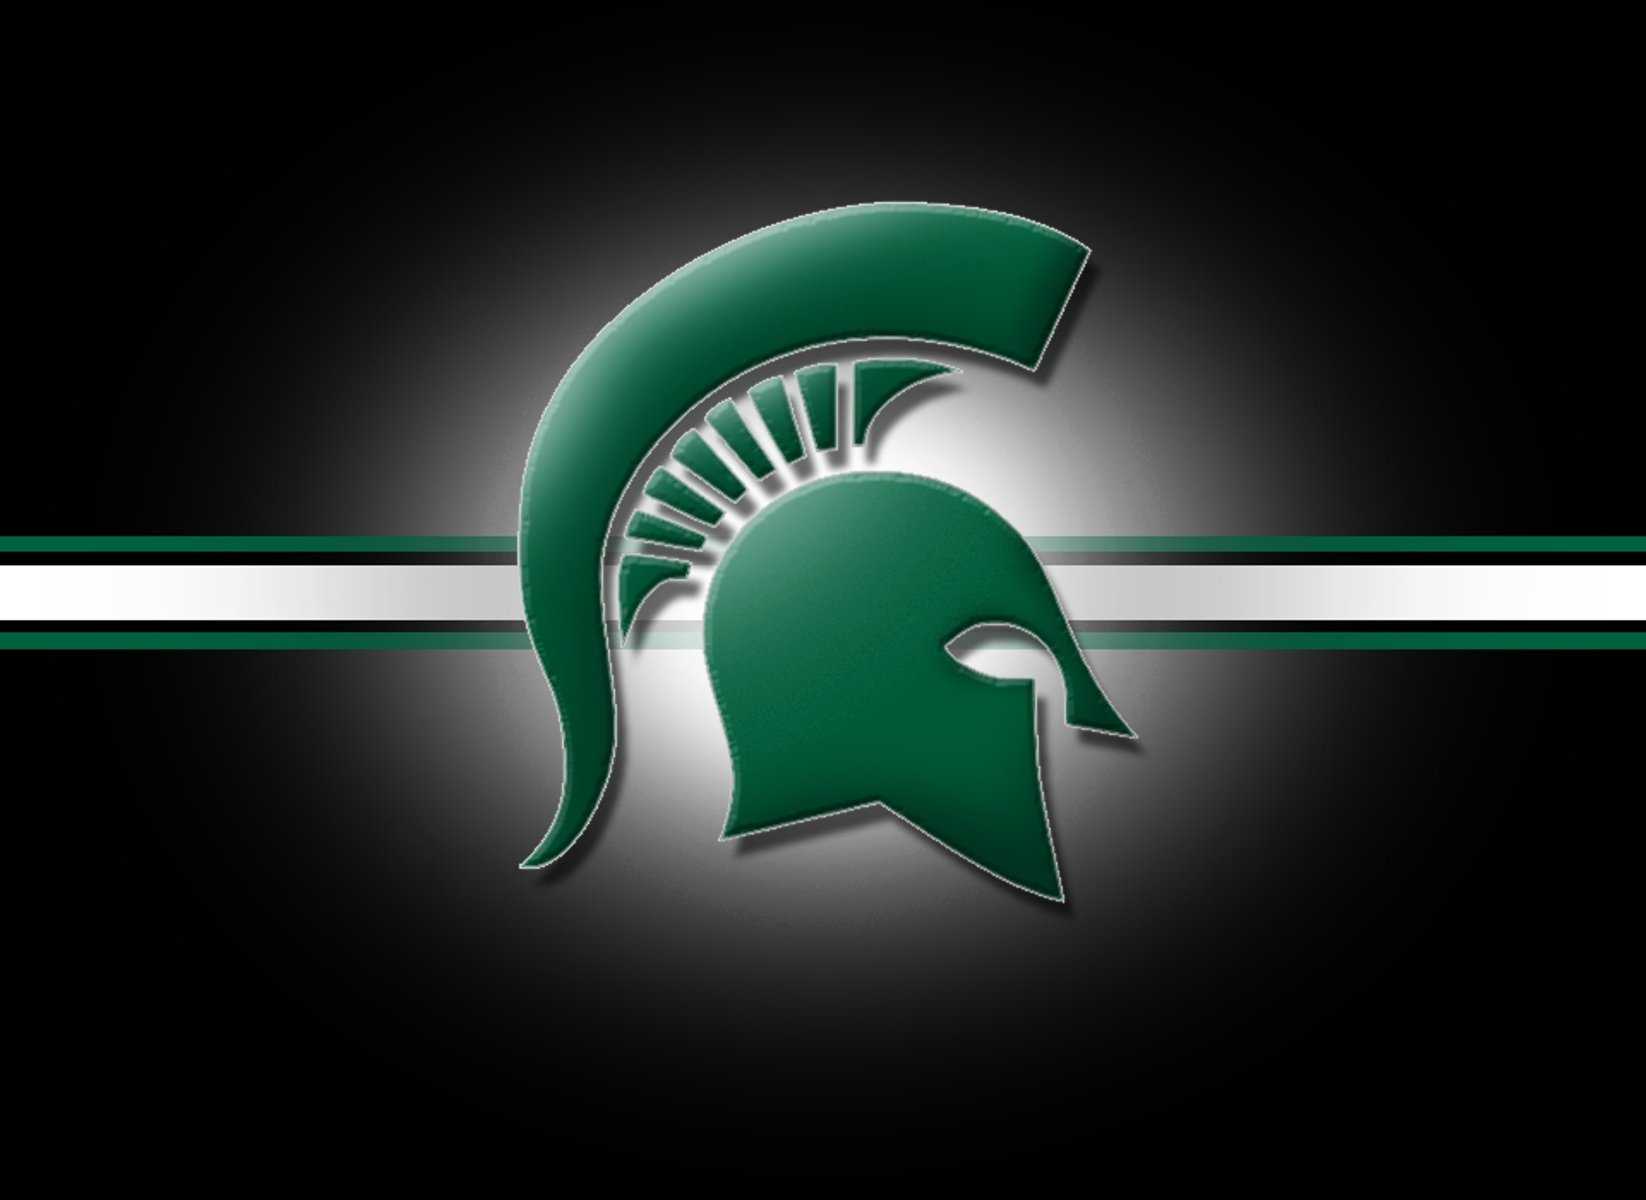 Michigan state spartans college football wallpaper 1646x1200 595879 wallpaperup - Michigan state football backgrounds ...